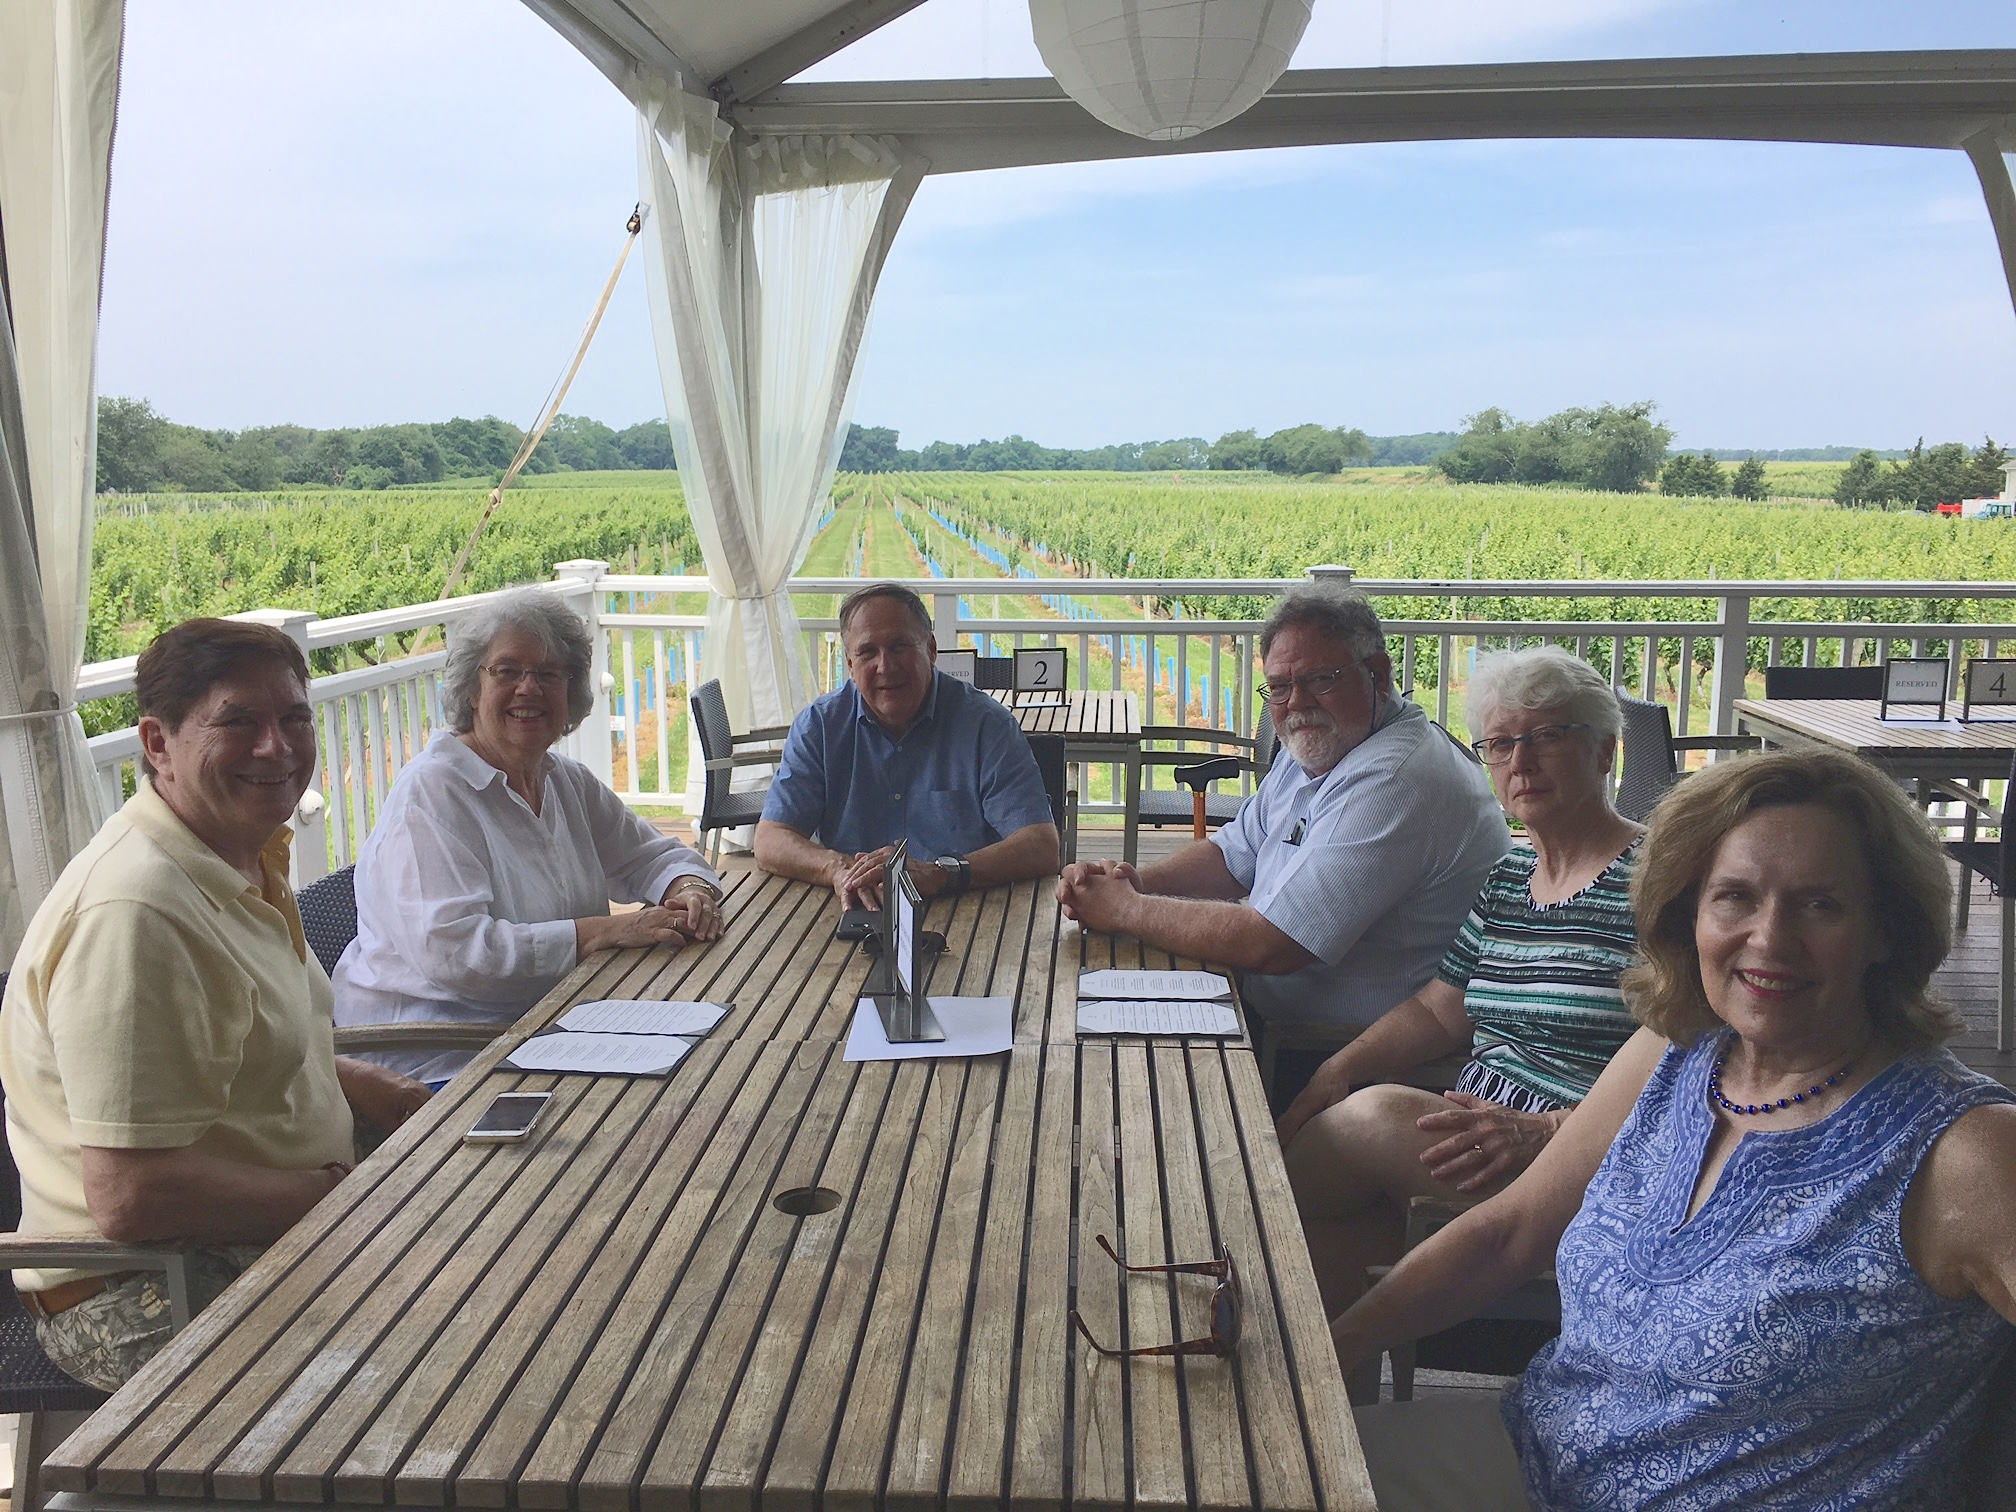 John, Betsy, Fred, Dave, Chris, & Lorraine at a winery on LI